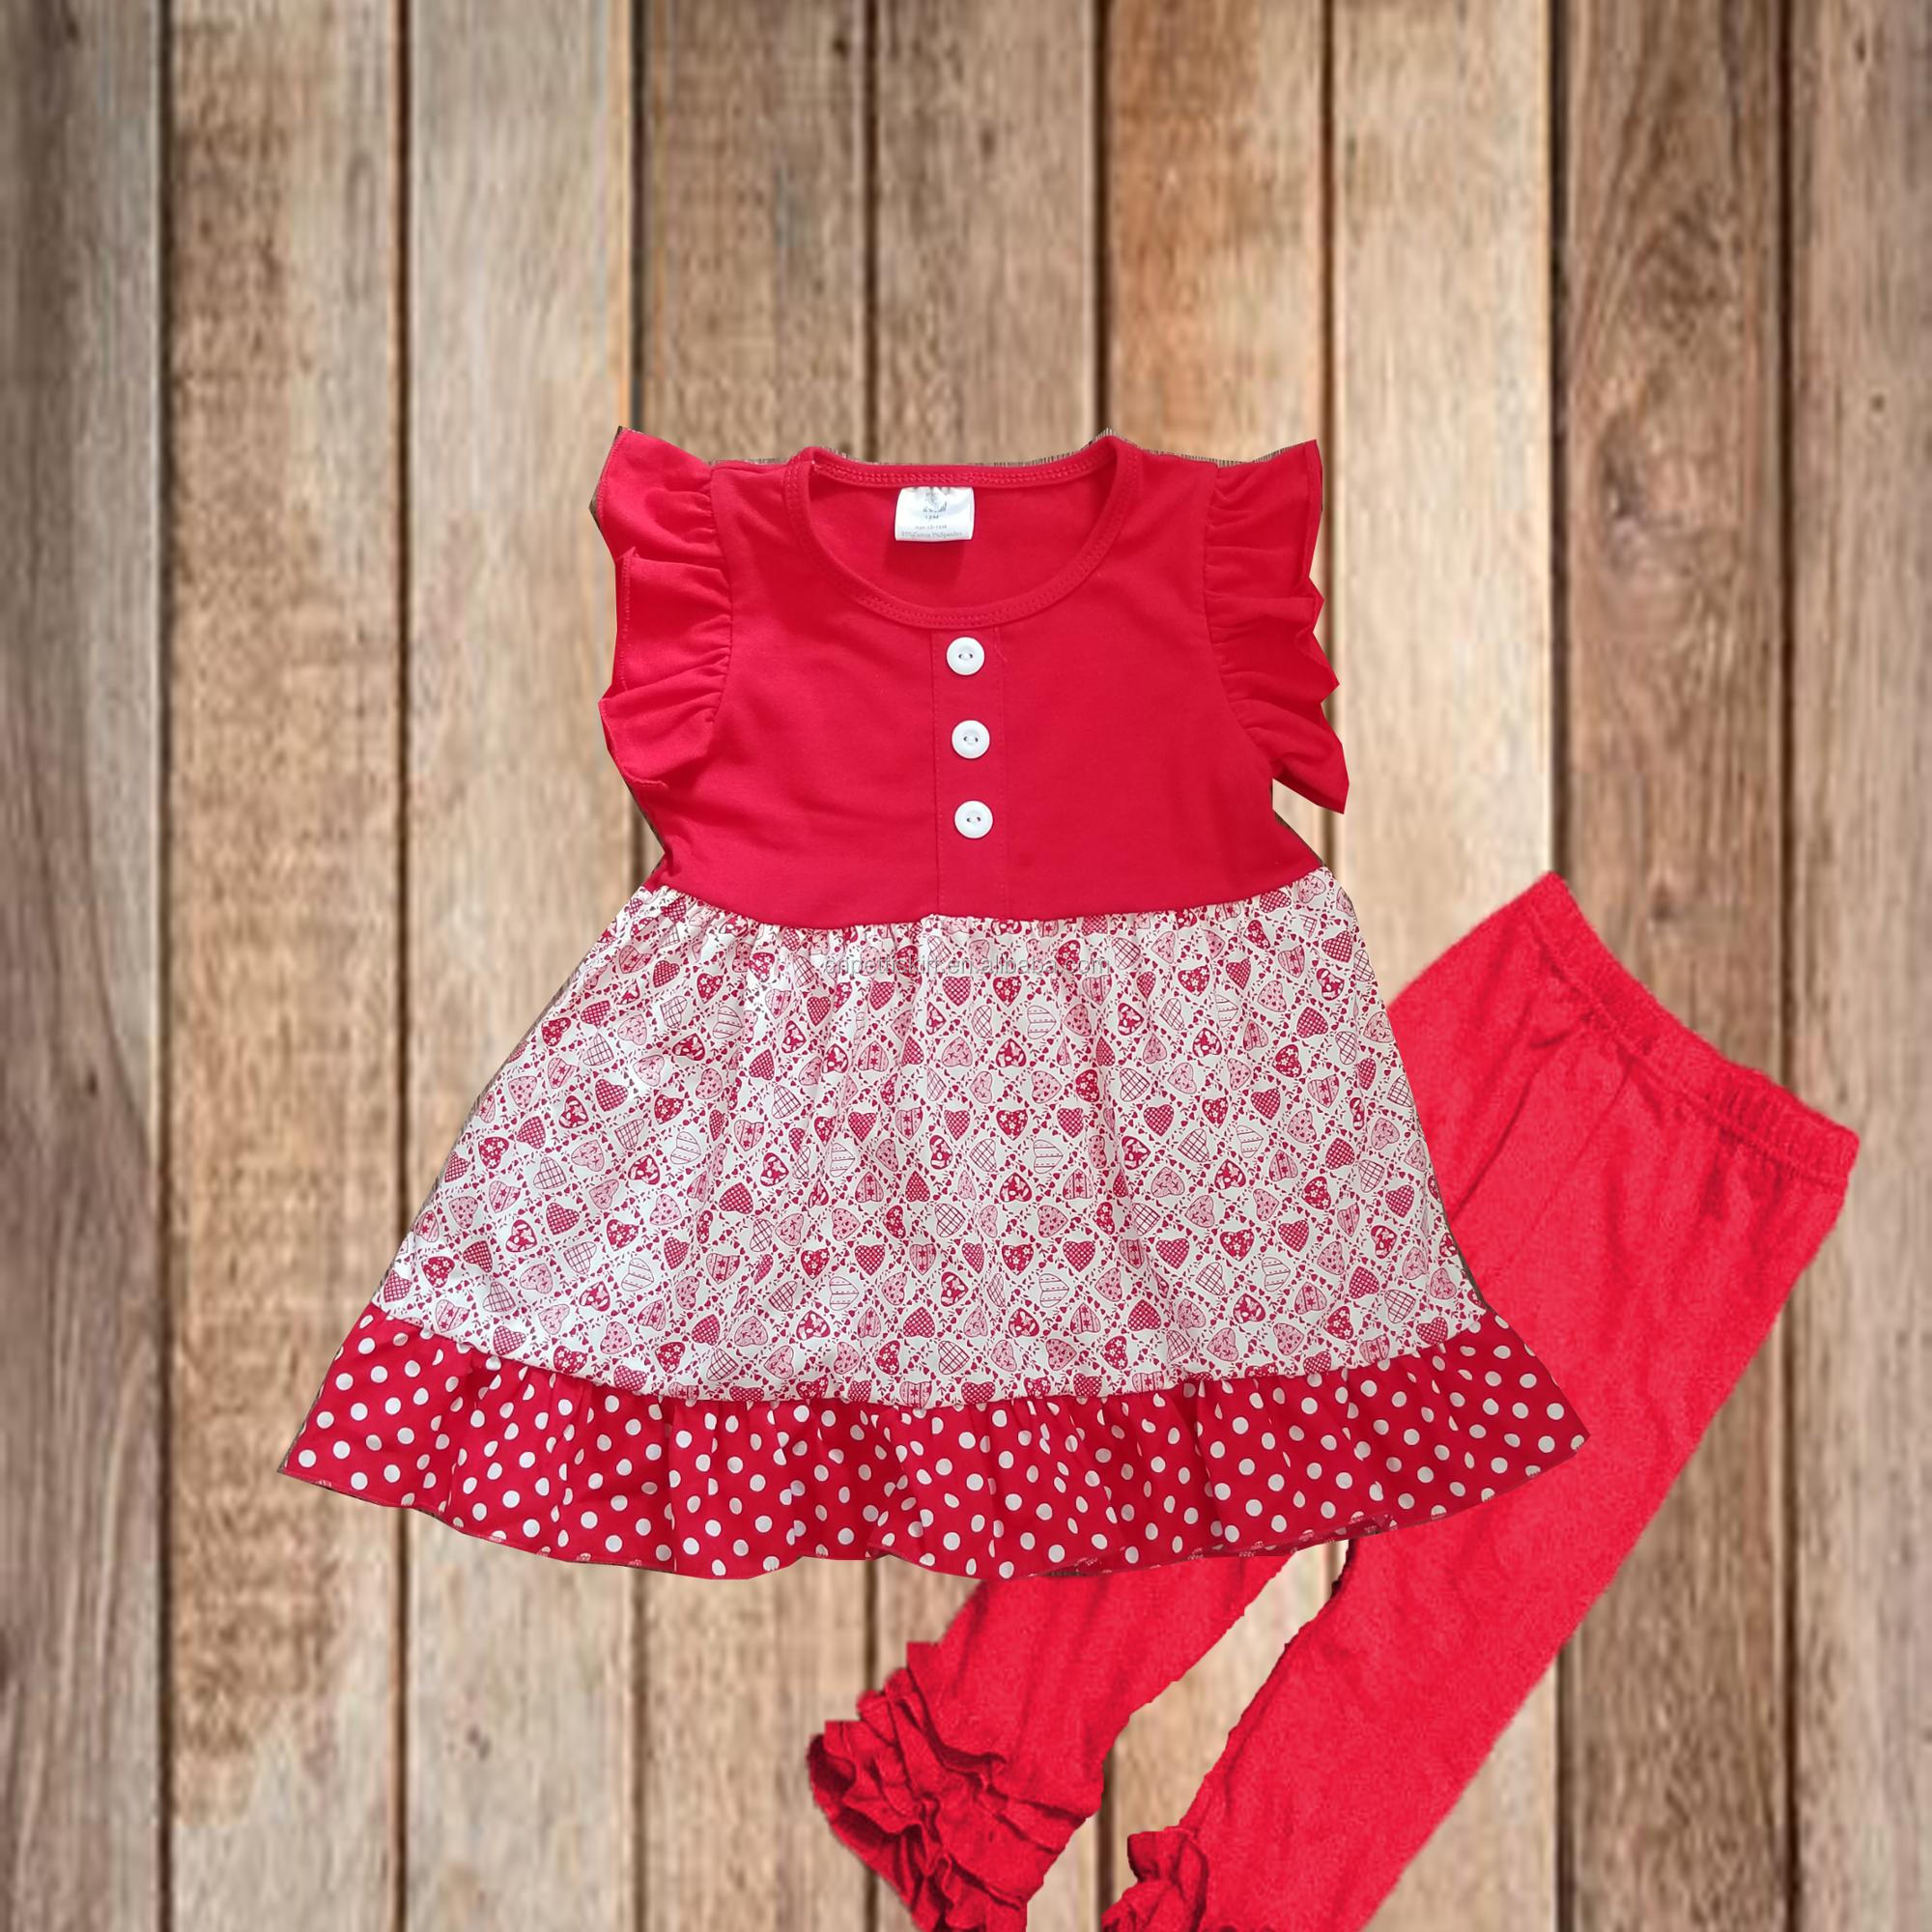 706dea5d4 2018 Valentine's day pretty frock design best selling hot heart print  princess dress fashion boutique baby